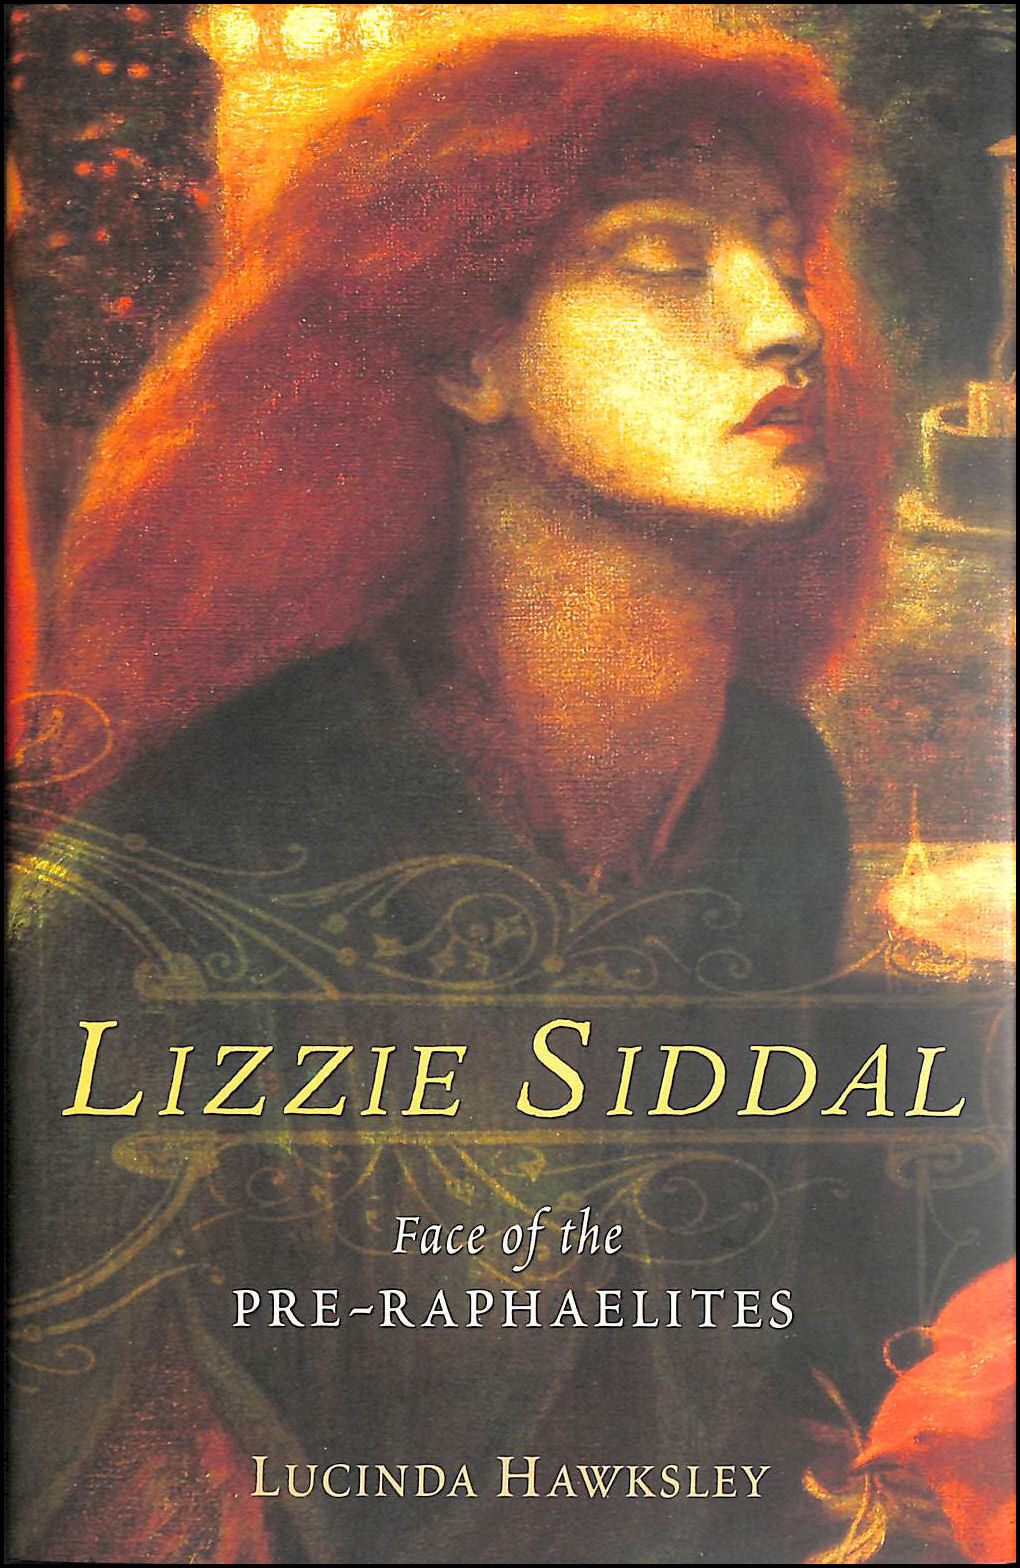 Image for Lizzie Siddal: Face of the Pre-Raphaelites